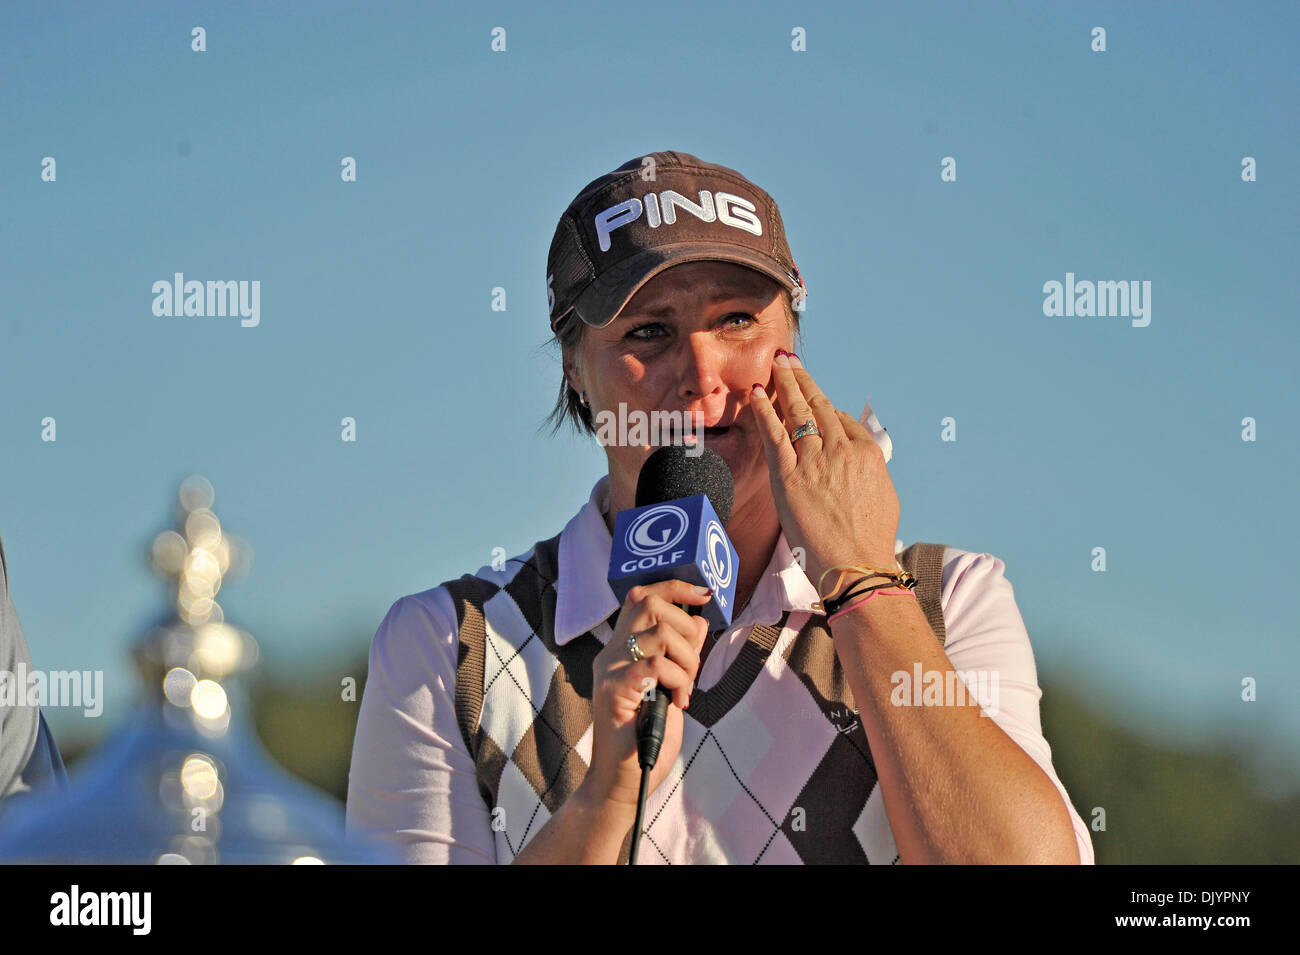 Dec. 5, 2010 - Orlando, Florida, United States of America - A teary eyed Maria Hjorth thanks her fans after winning the LPGA Tour Championship at Grand Cypress Golf Club in Orlando,  Maria Hjorth wins the LPGA Tour Championship tournament, while Yani Tseng takes the Player of the Year award for 2010 (Credit Image: © Brad Barr/Southcreek Global/ZUMAPRESS.com) - Stock Image